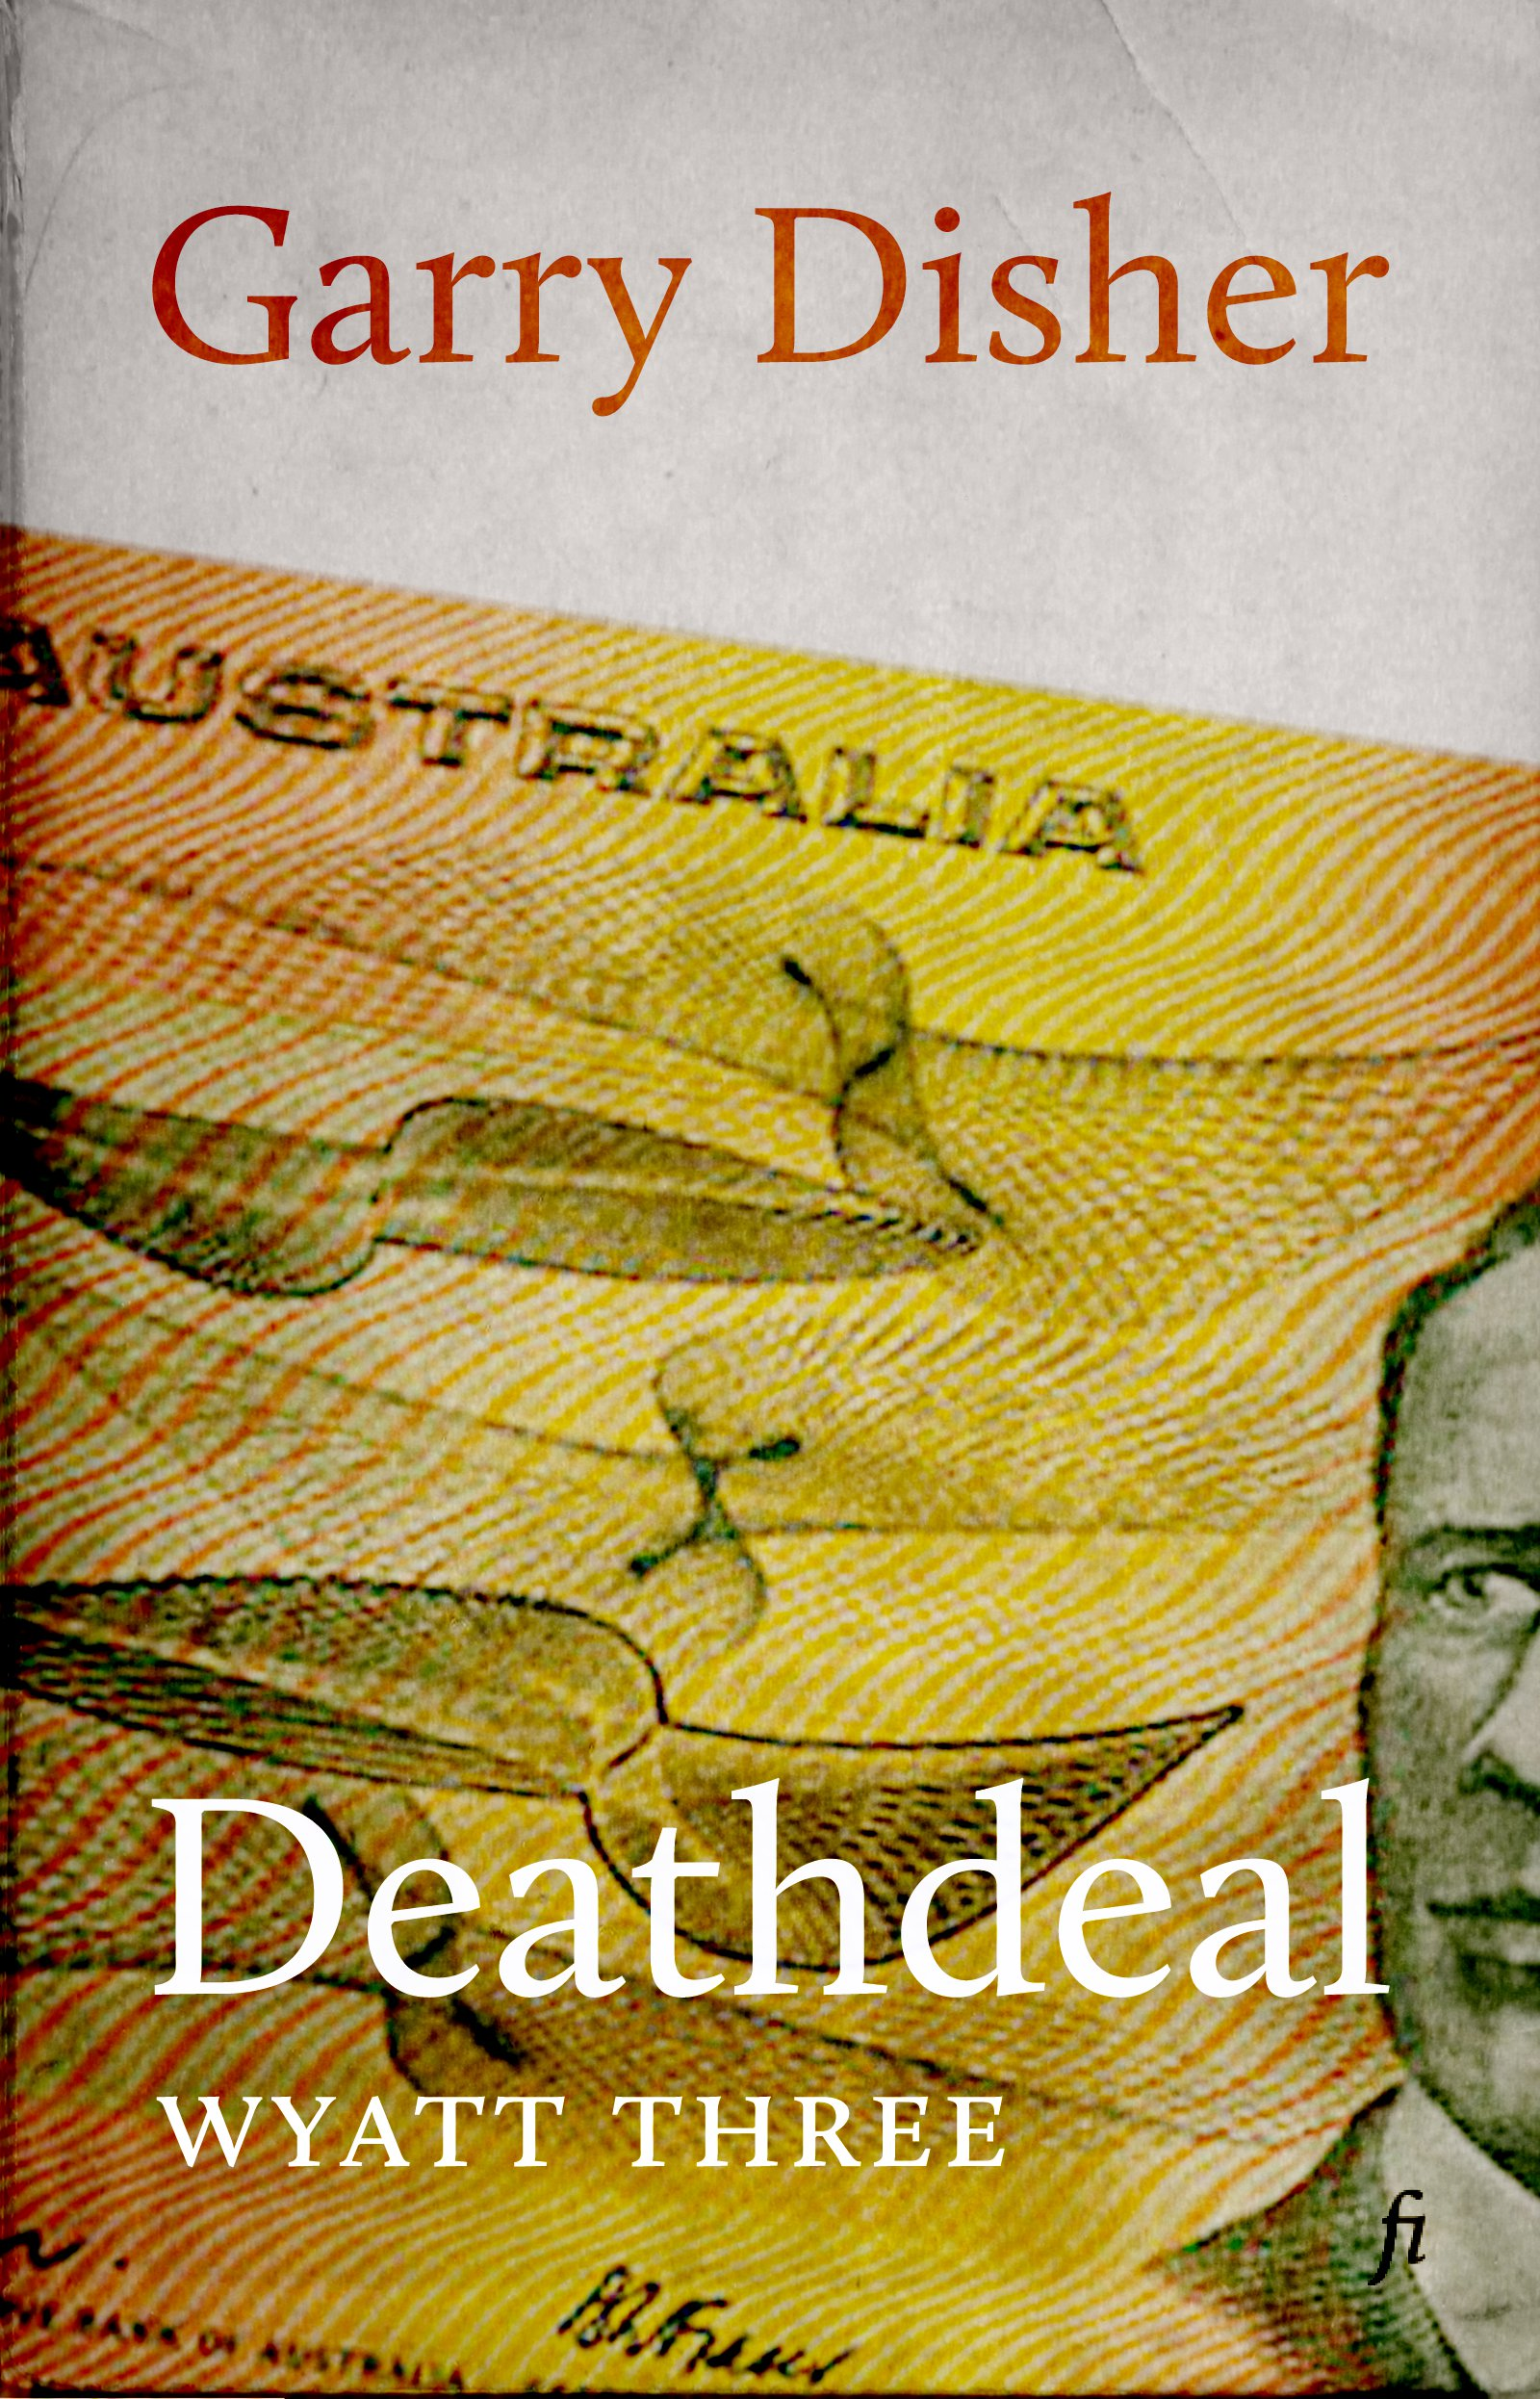 Book Cover: Wyatt 3 Deathdeal (1993) Cover